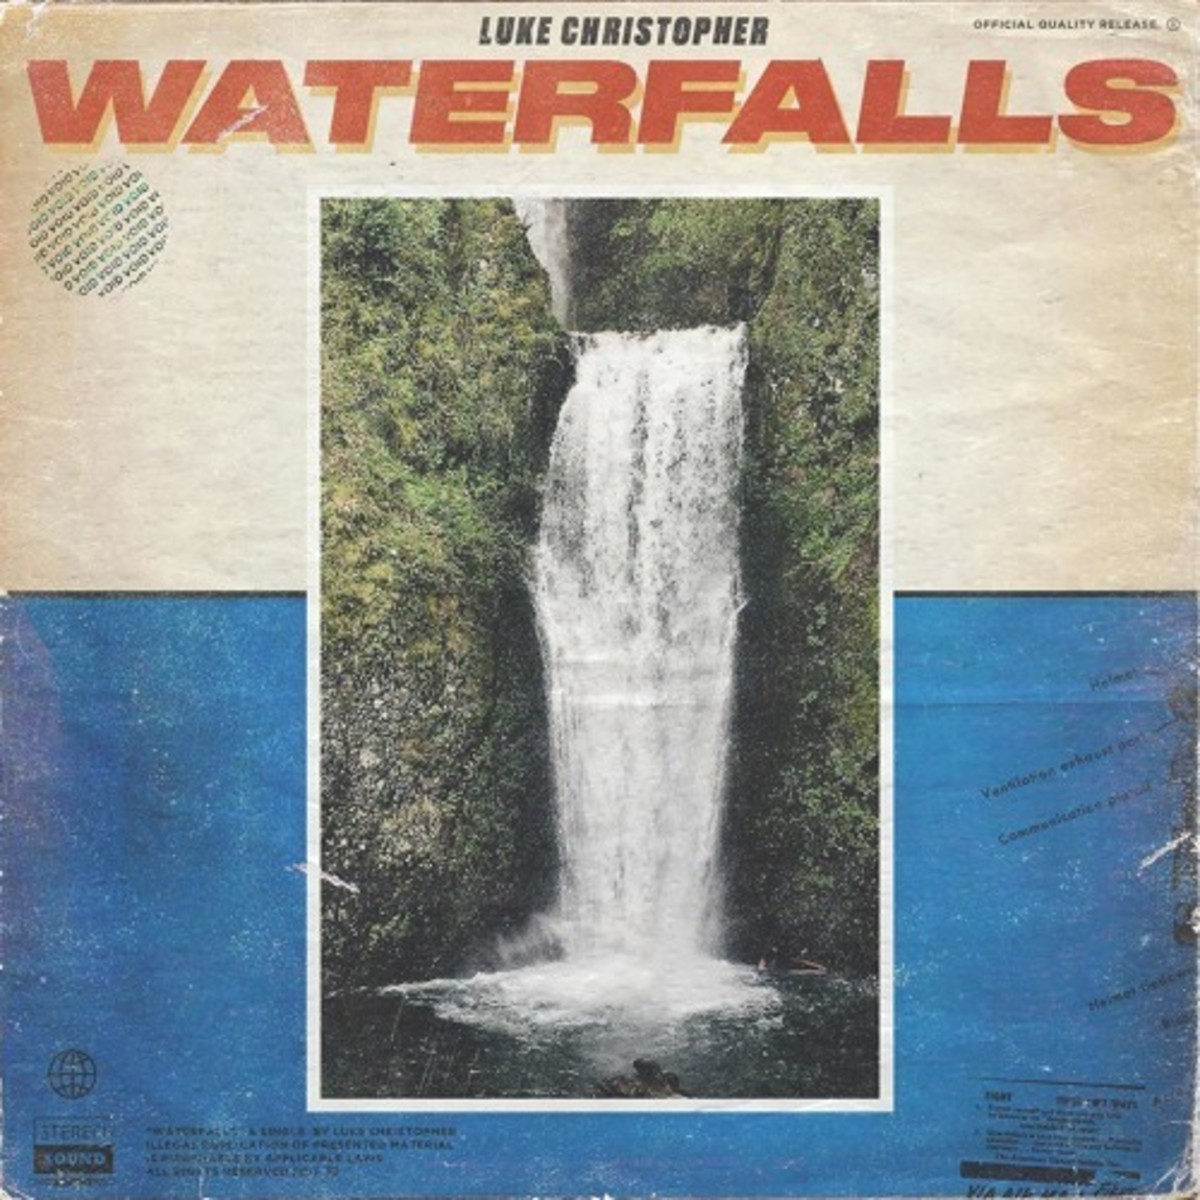 luke-christopher-waterfalls.jpg